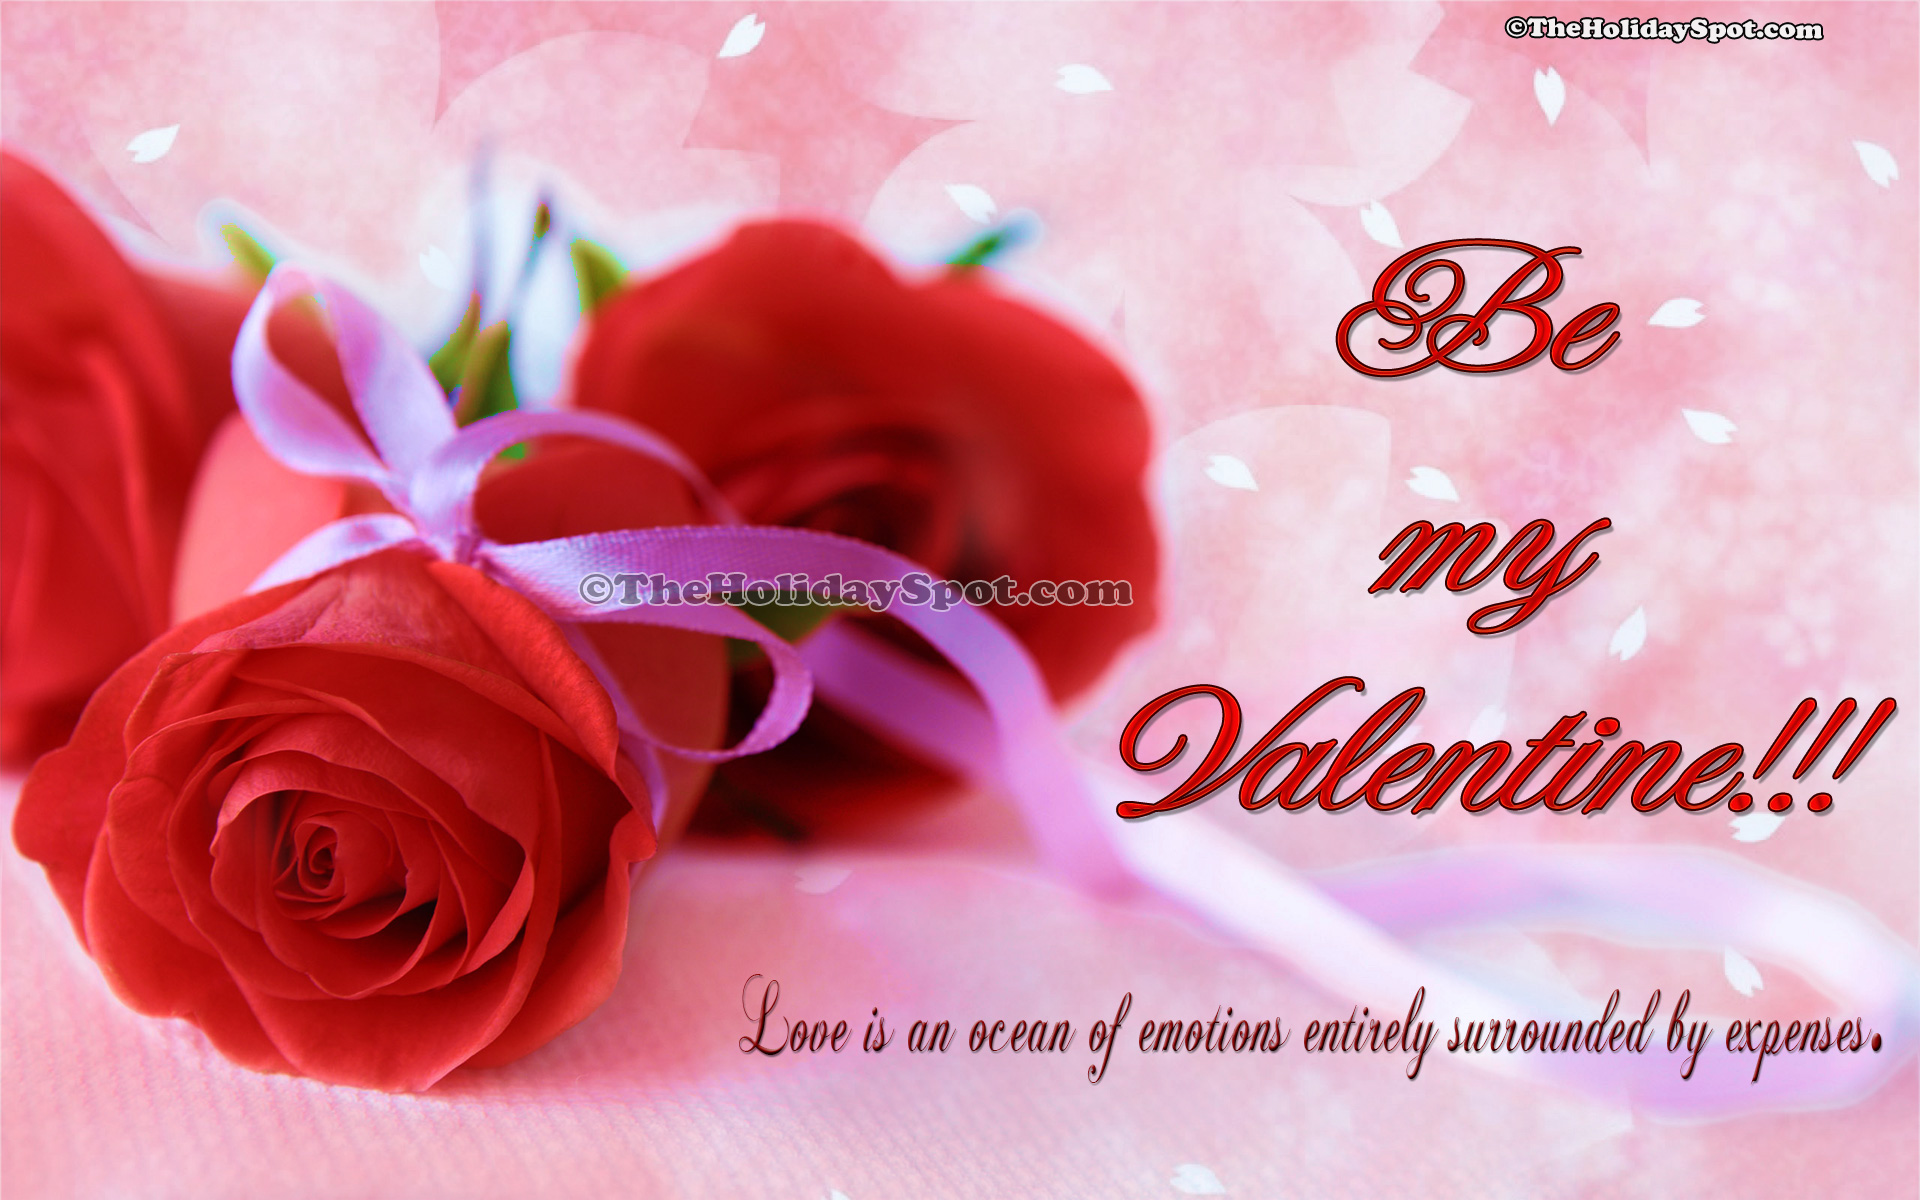 83 valentines day wallpapers, Ideas